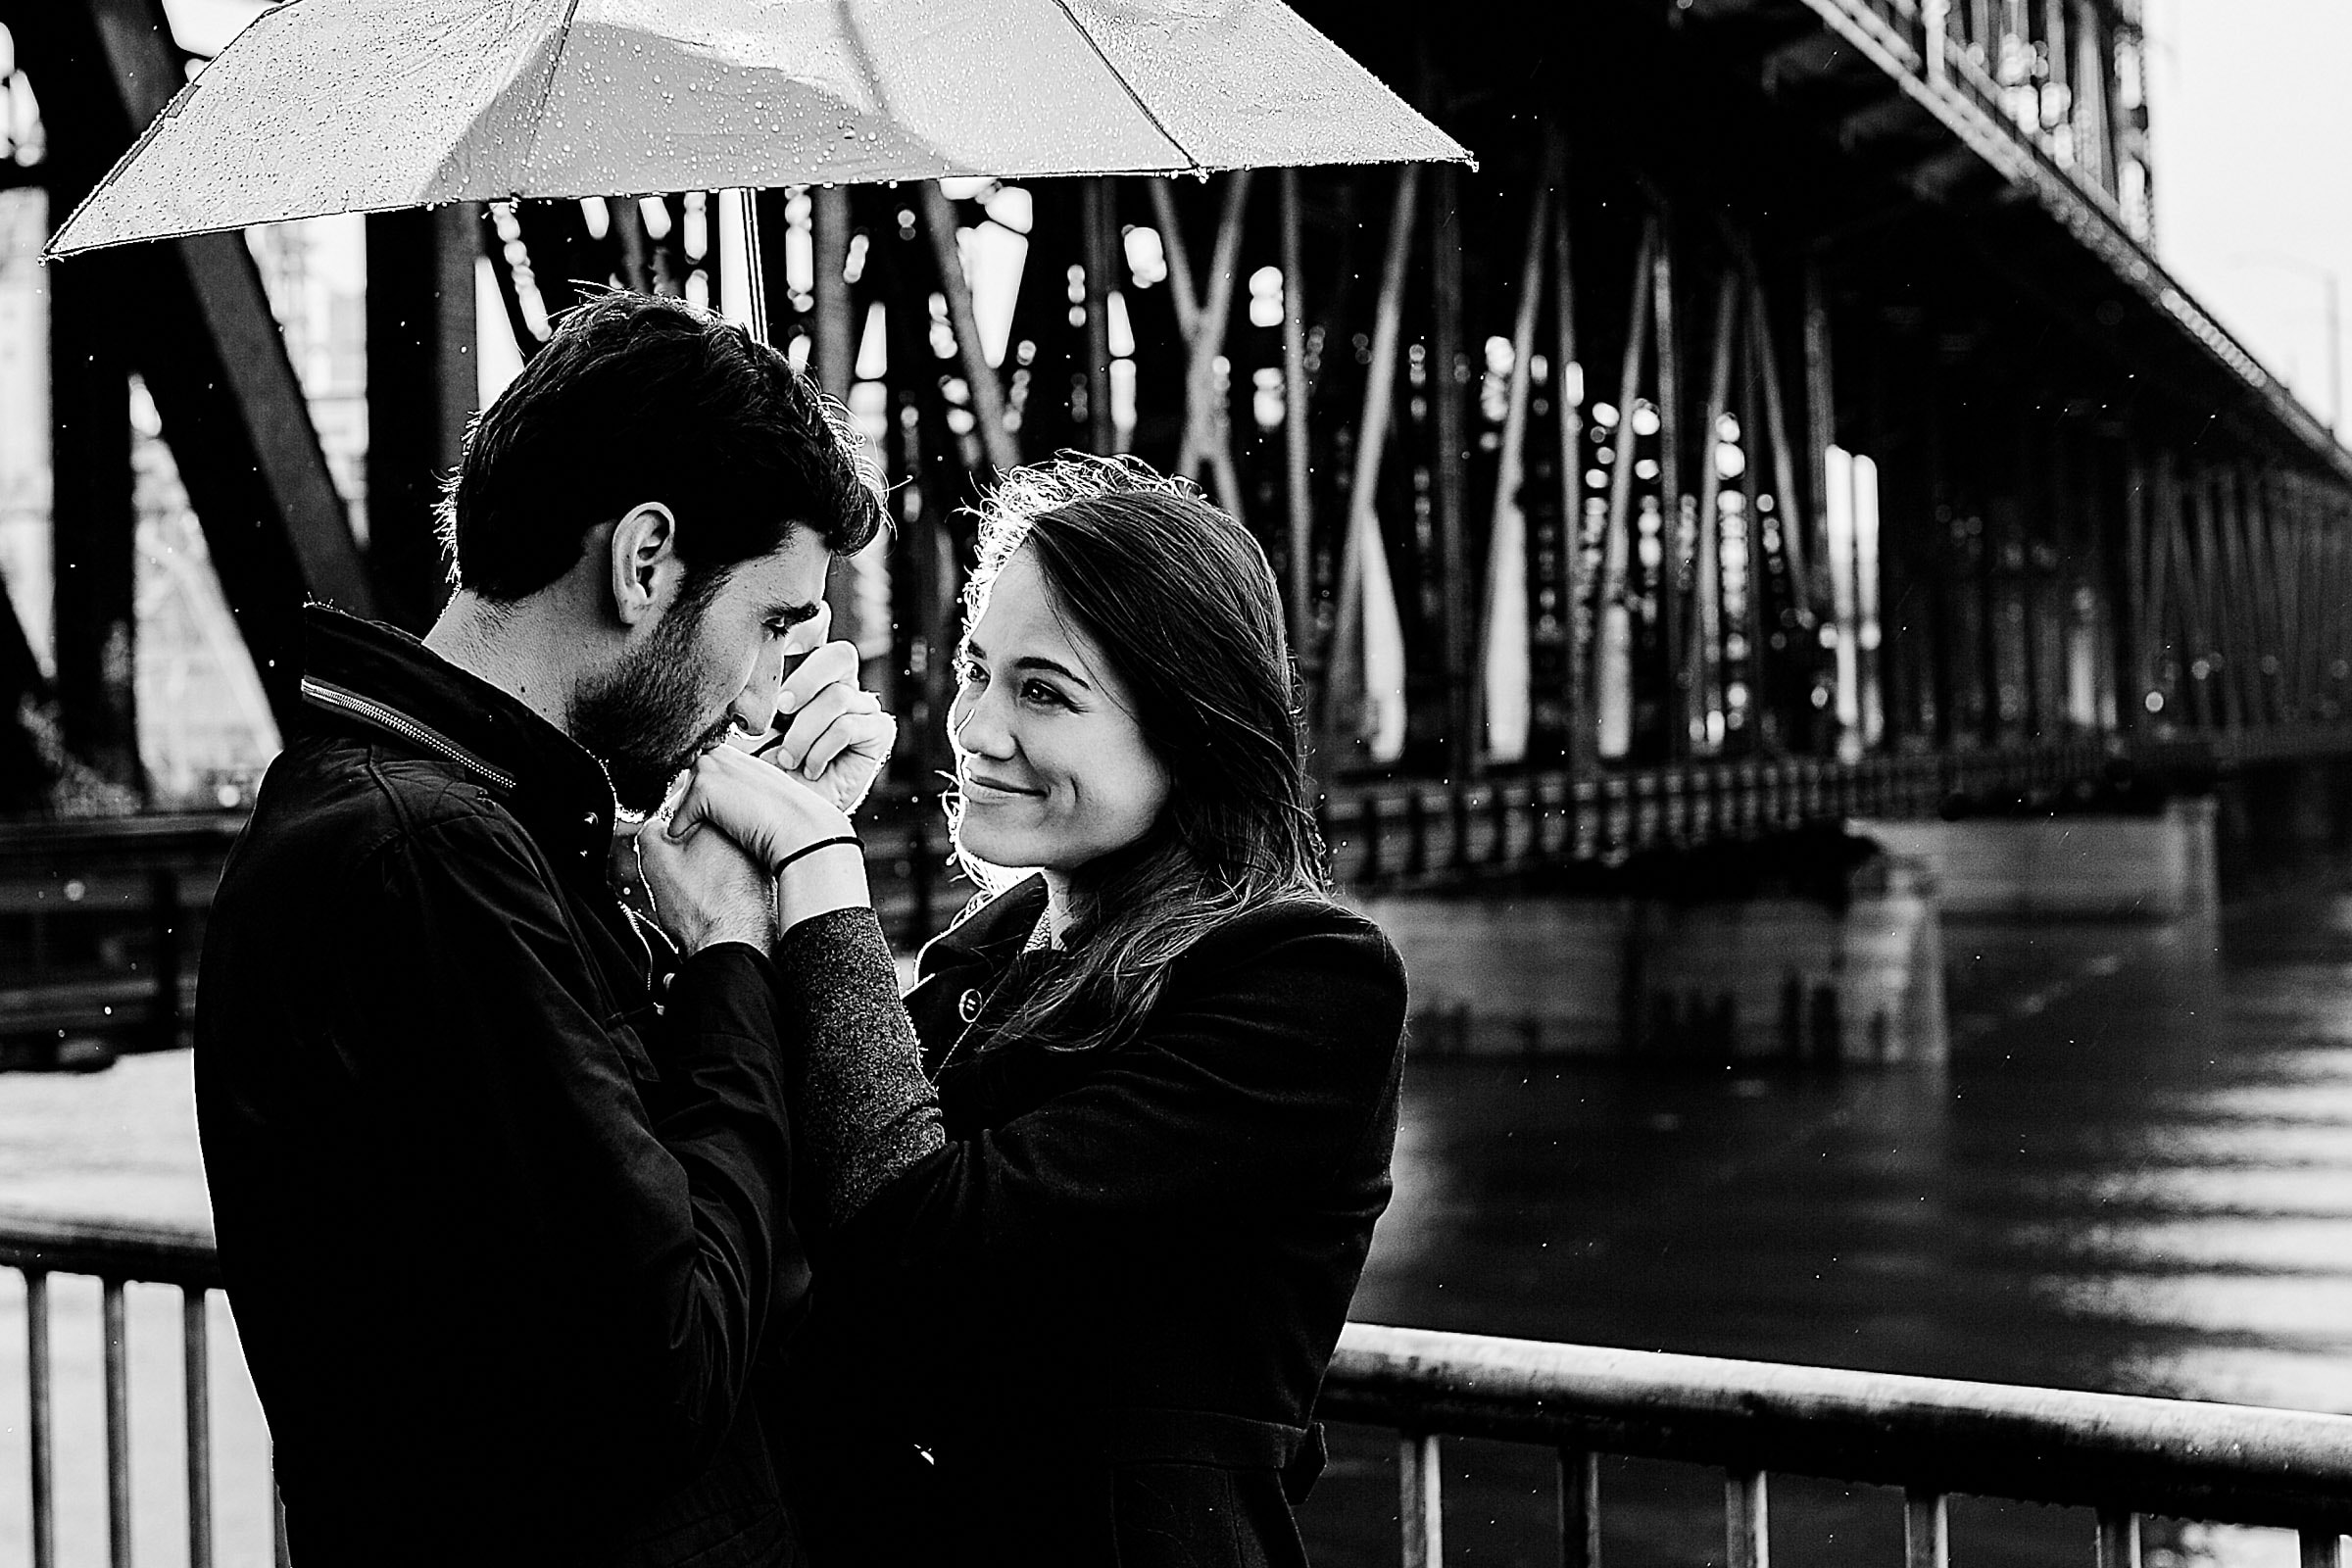 An emotional Portland engagement proposal photo under an umbrella along the Portland waterfront park with beautiful light